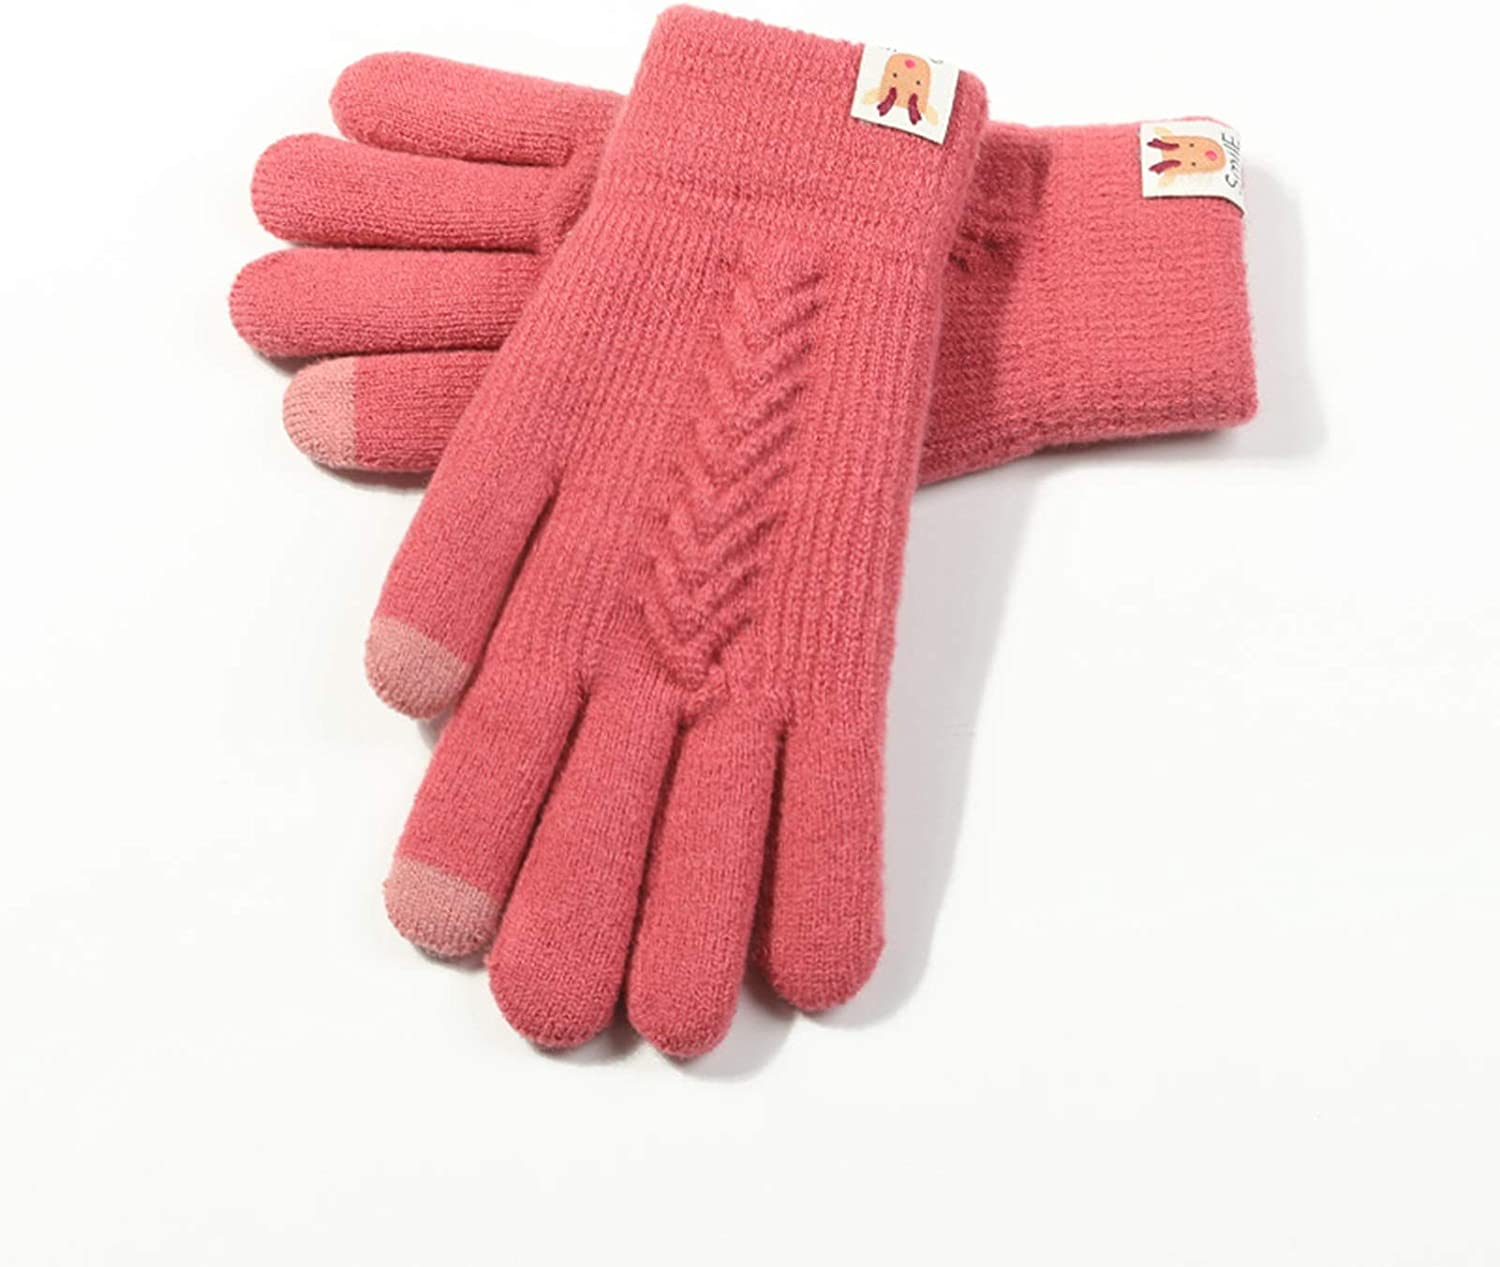 FOLDING Gloves Women's Winter Touch Screen Gloves Knitted Warm Finger Double Layer Touch Screen Texting Gloves for Women (Color : Red)